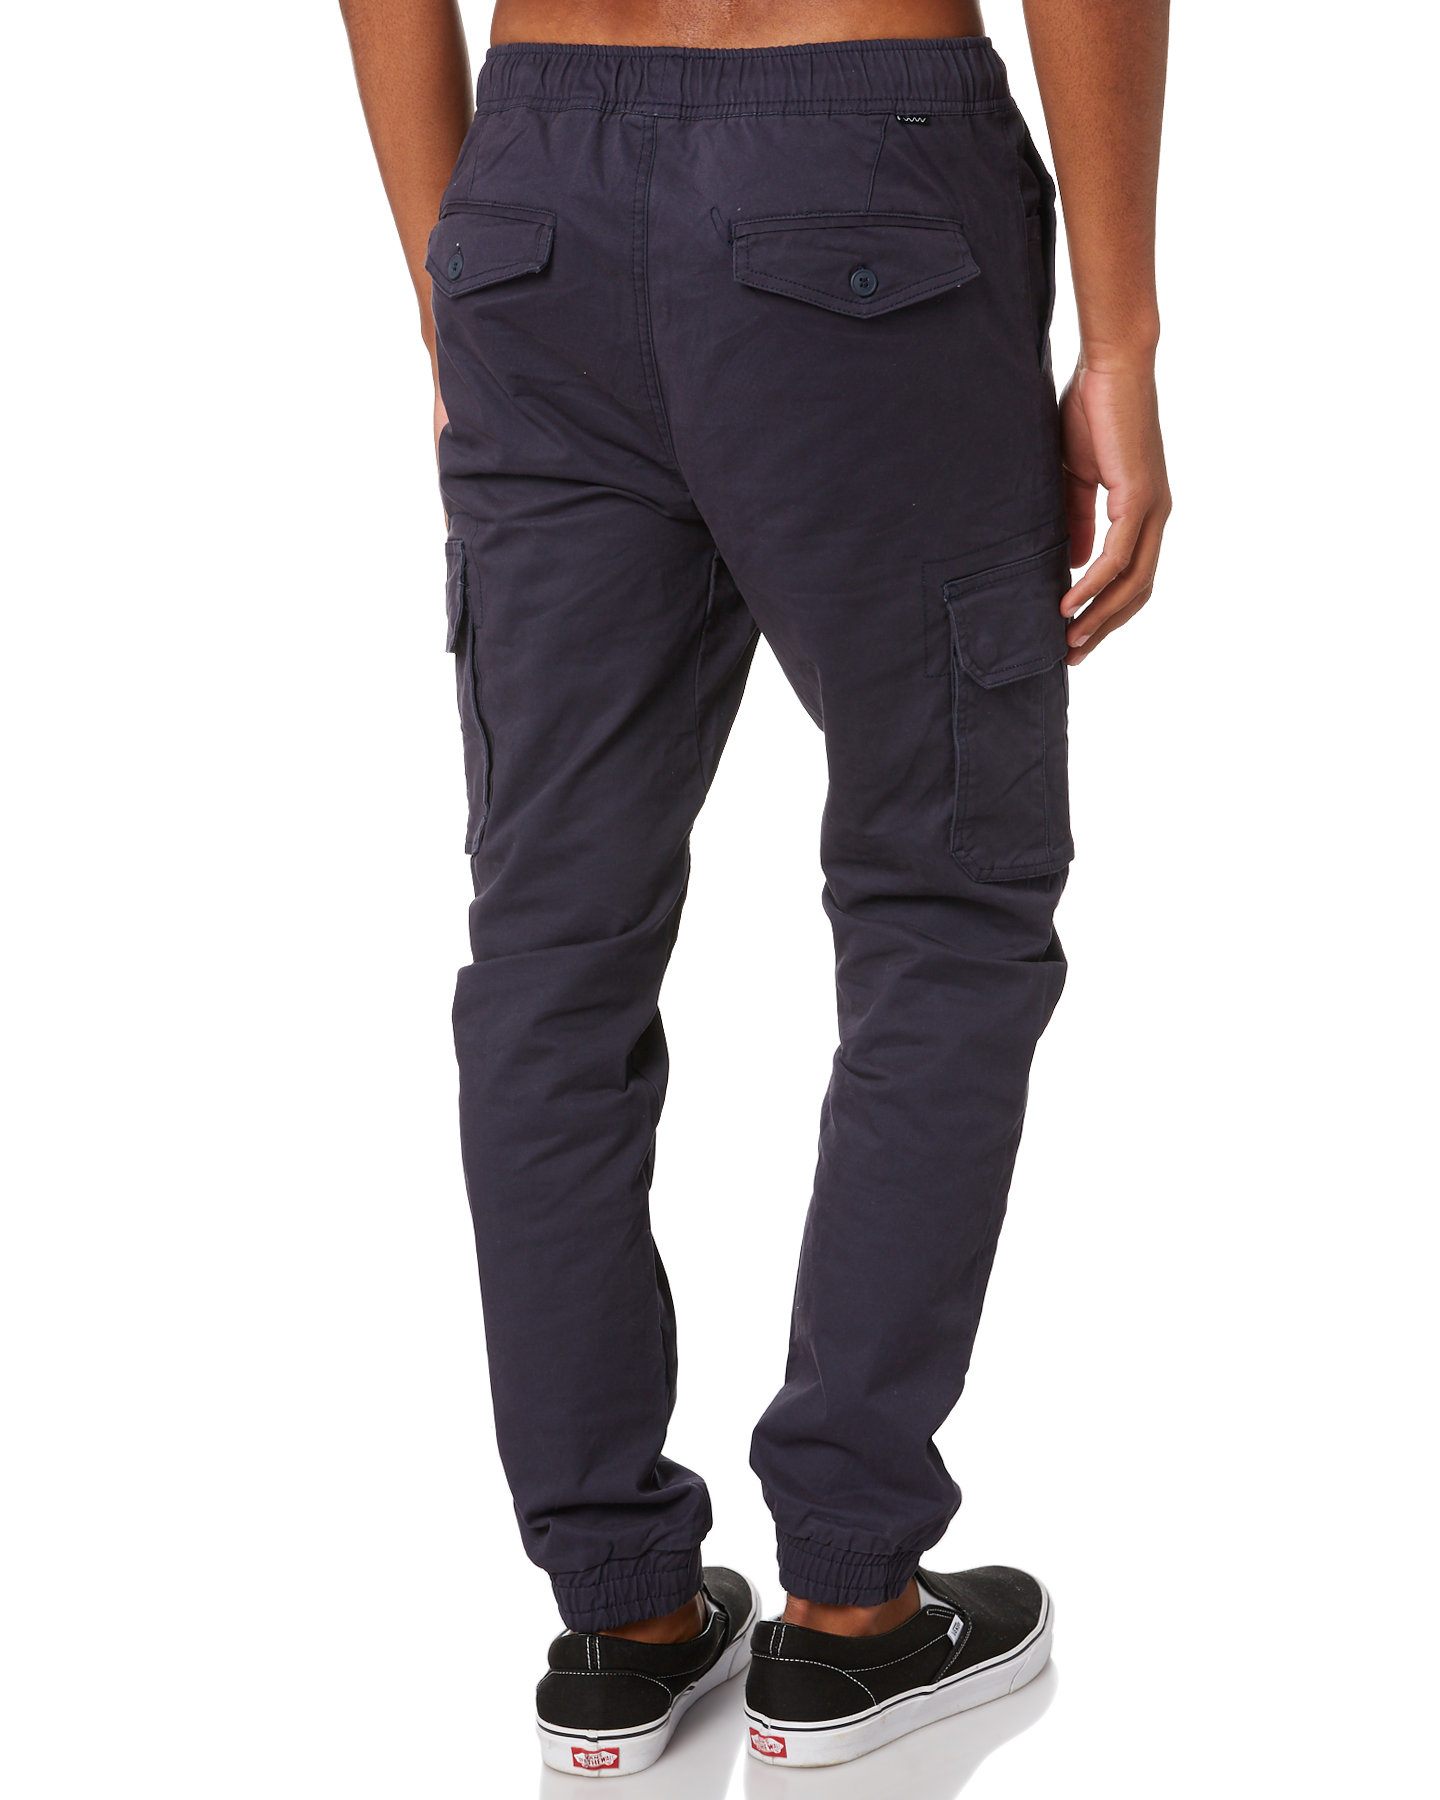 New-Swell-Men-039-s-Blunt-Cargo-Mens-Jogger-Pant-Cotton-Elastane-Green thumbnail 24